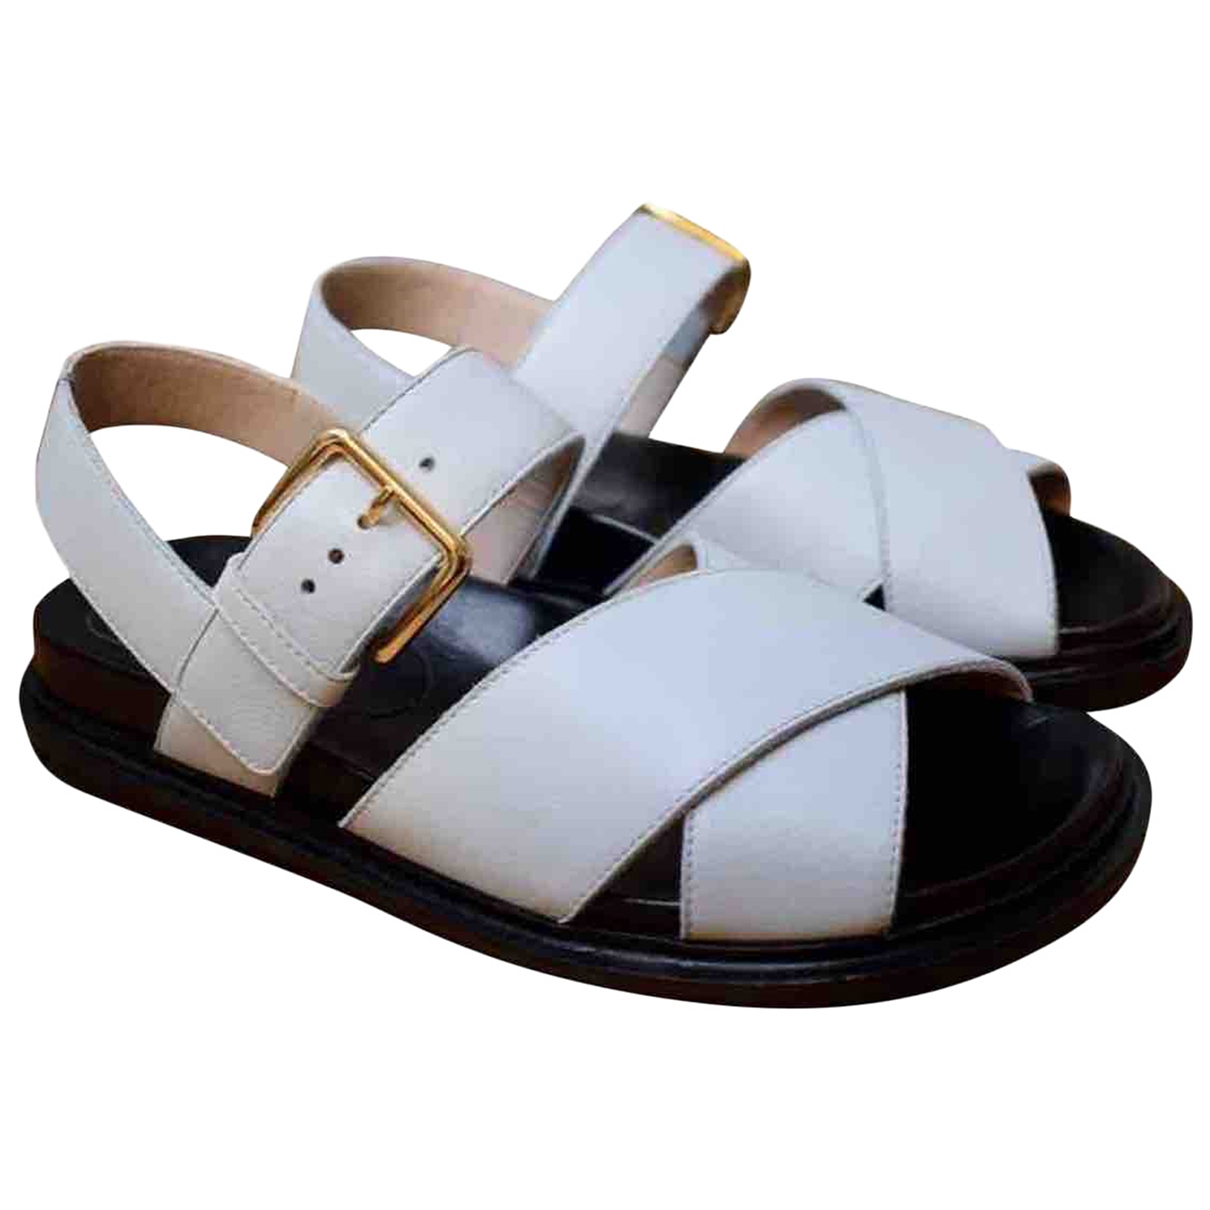 Marni \N White Leather Sandals for Women 36 EU